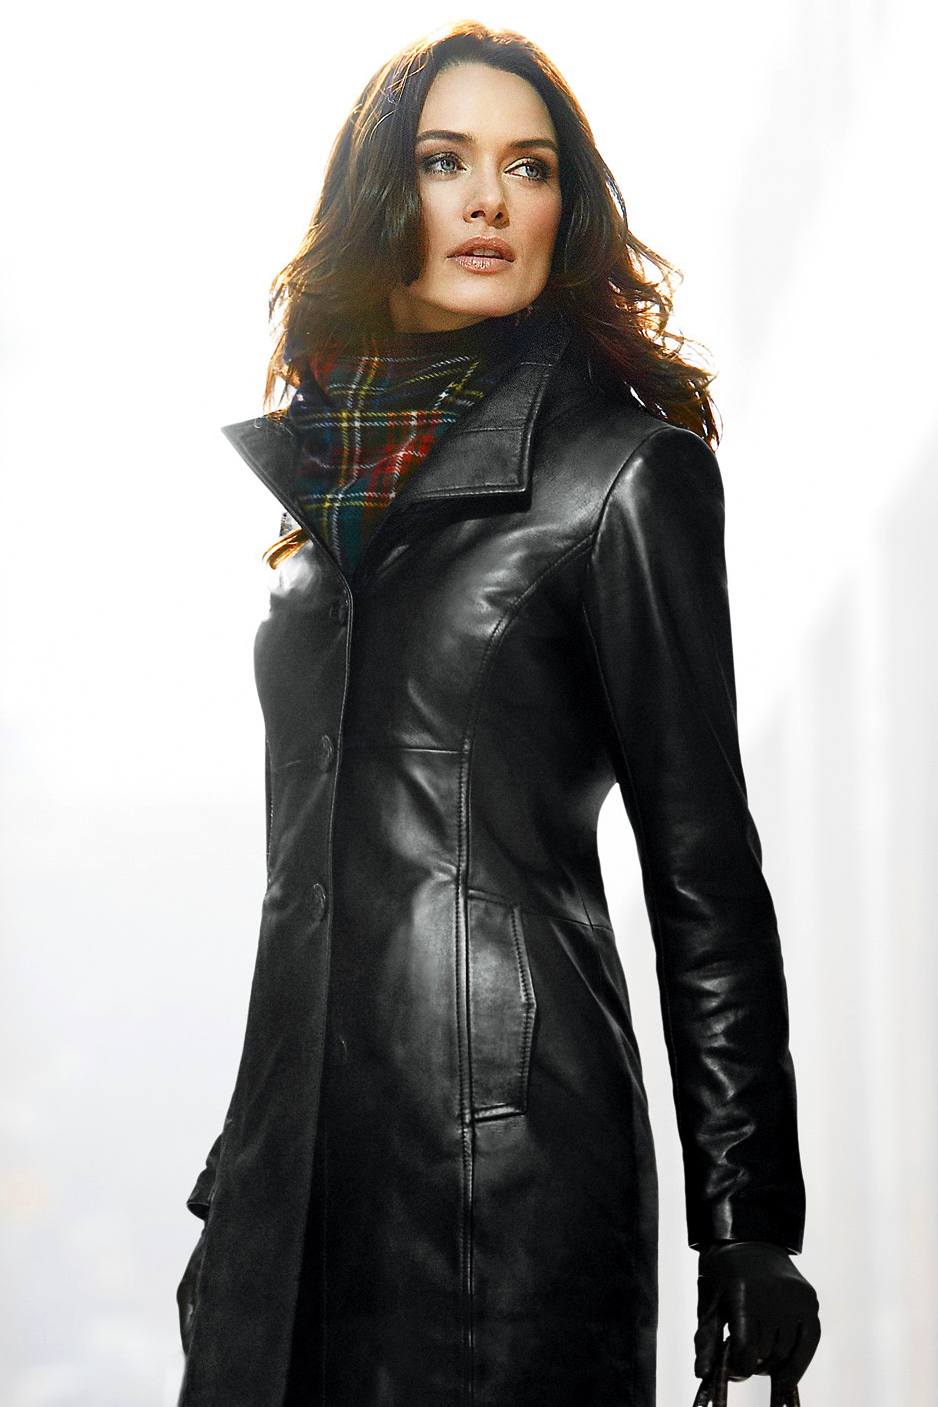 Leather Coat Daydreams: The resplendent lady in a leather coat as ...